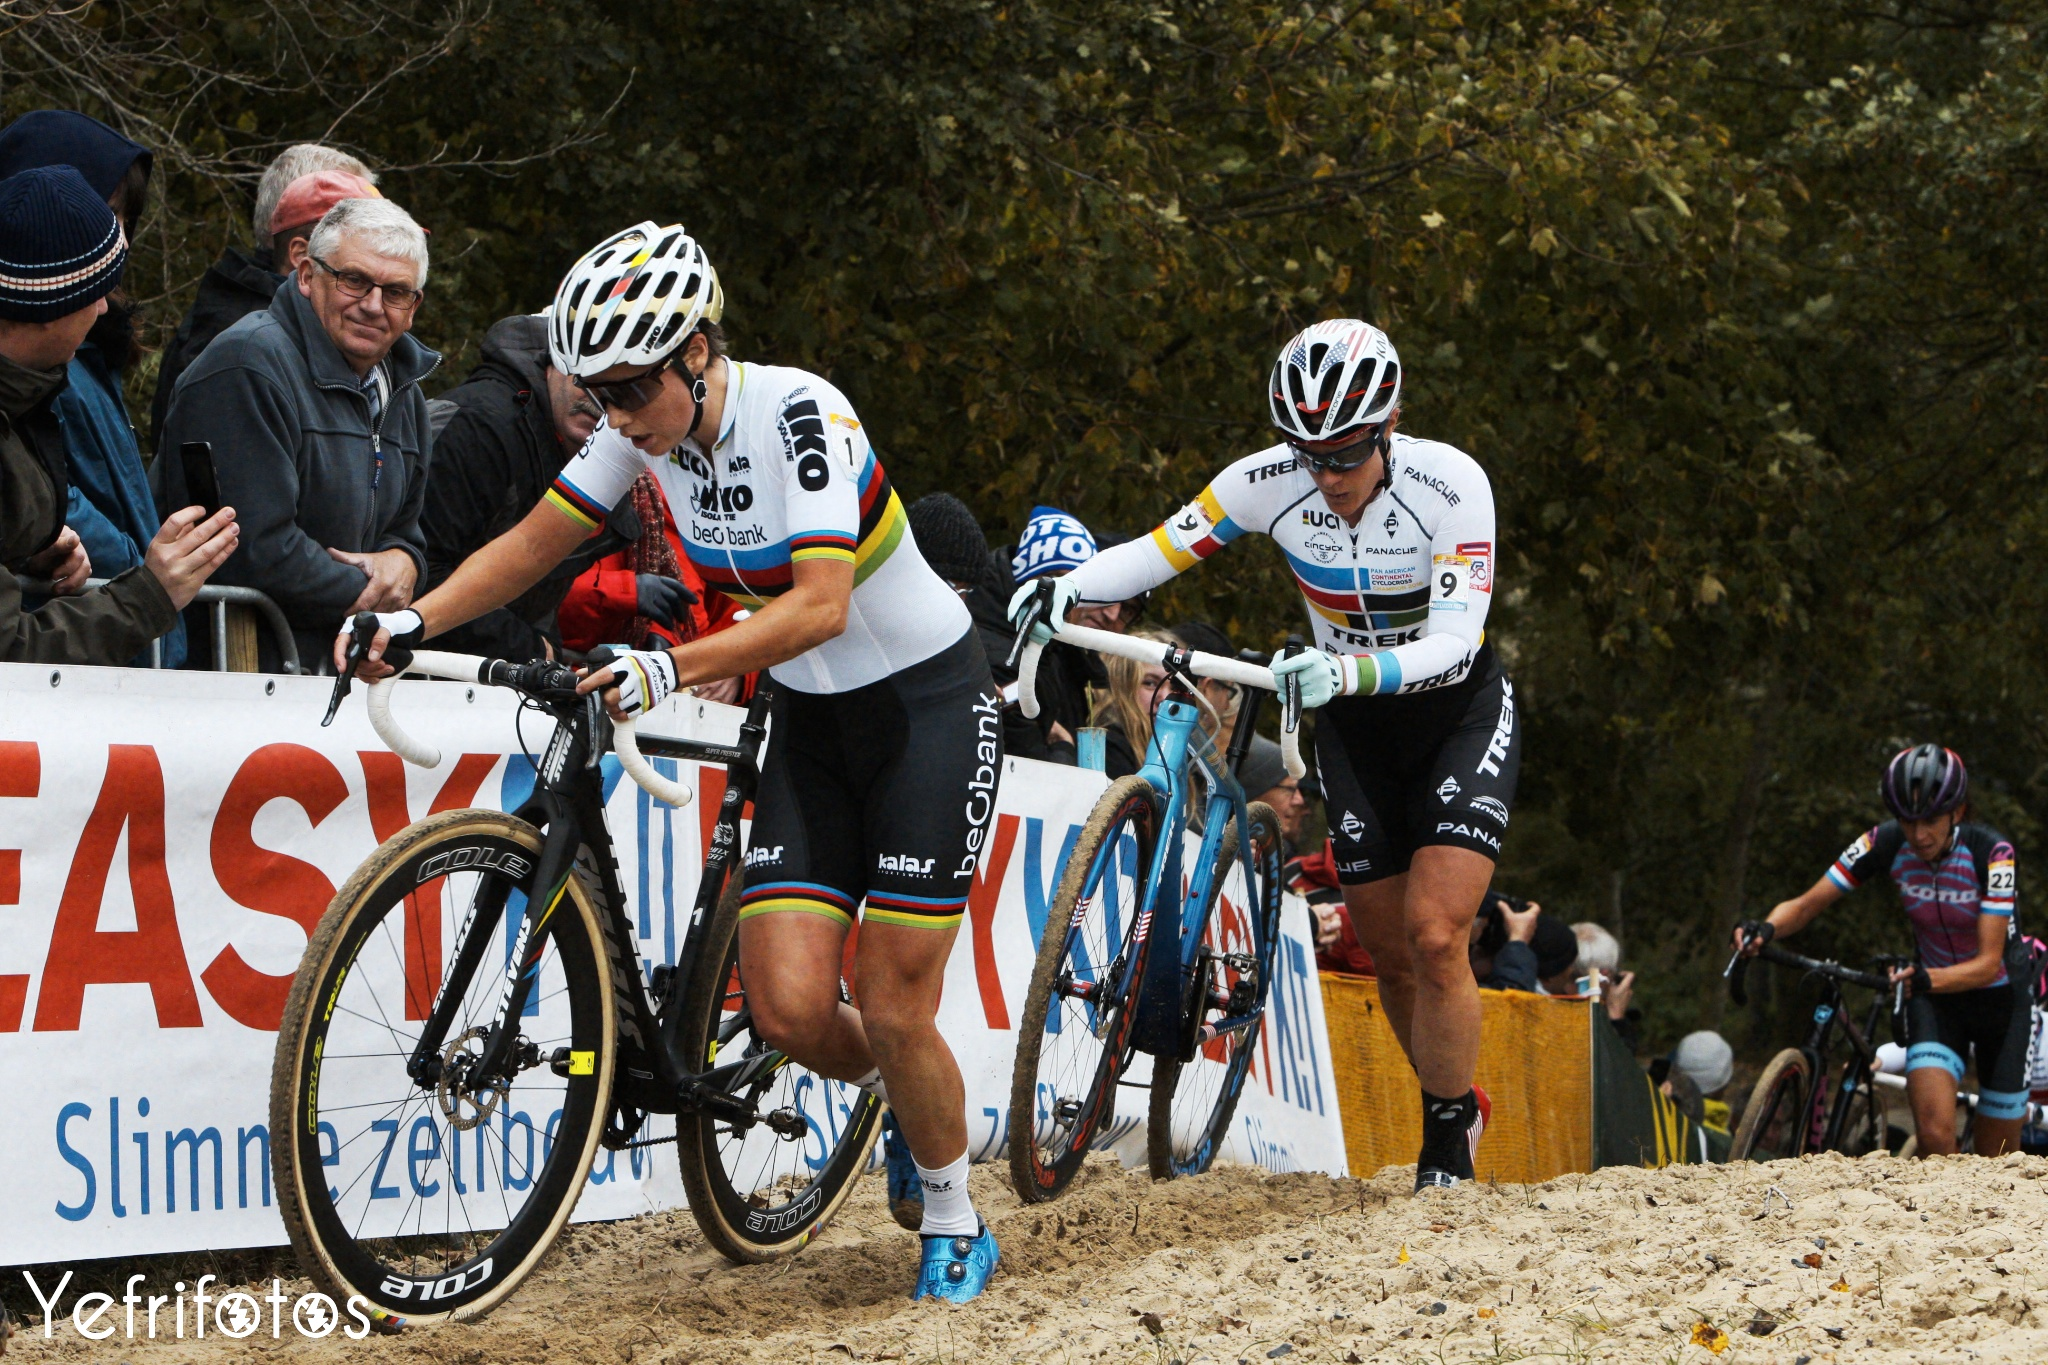 Koksijde - UCI Cyclocross World Cup - Sanne Cant - Katie Compton